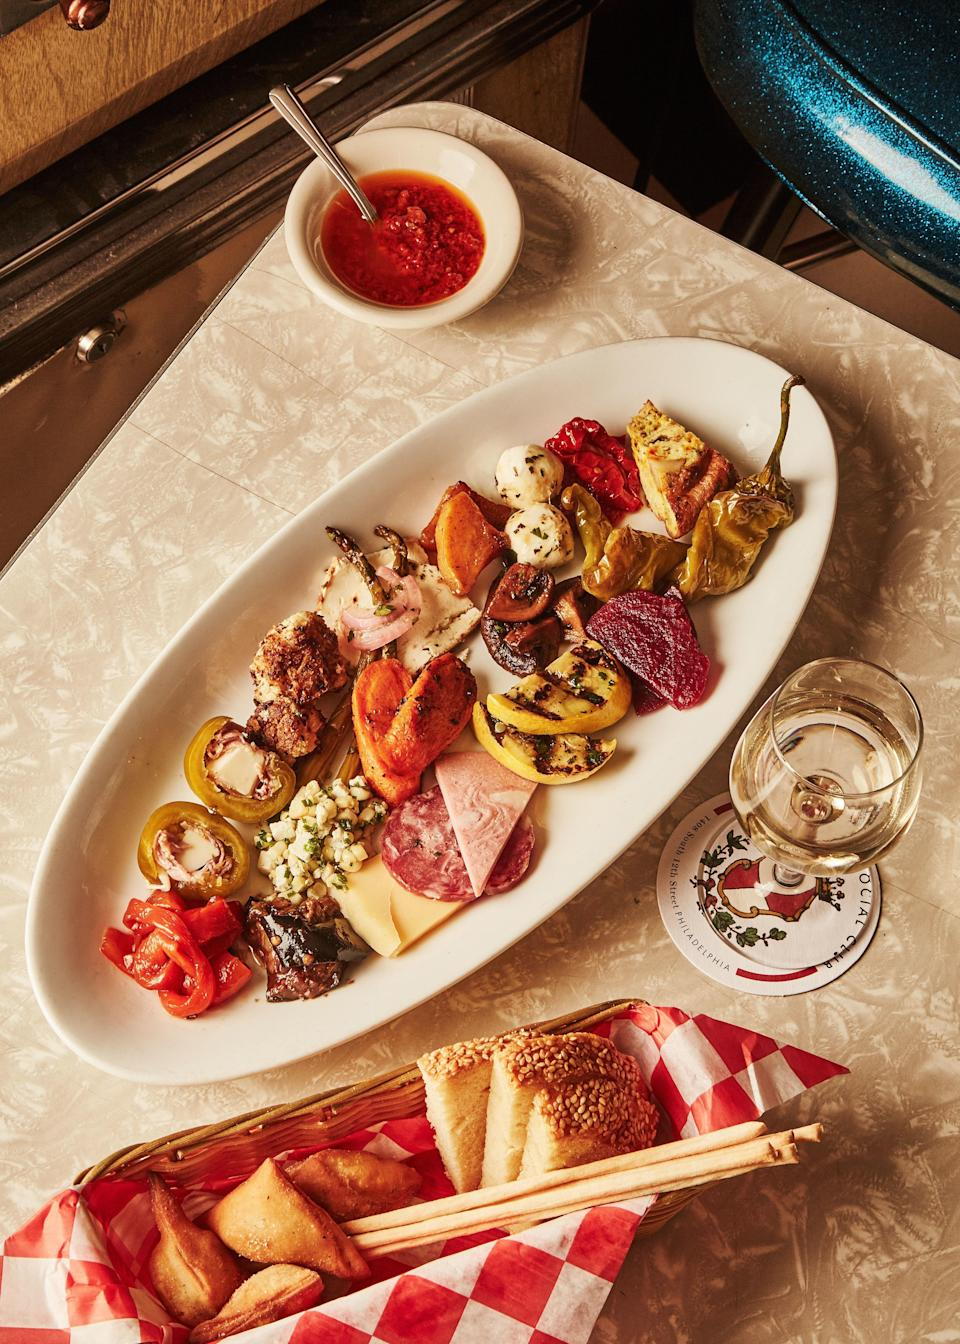 "An antipasto platter doesn't have to be a boring collection of cold cuts. Well-seasoned roasted seasonal vegetables add a ton of character and flavor to the mix. <a href=""https://www.epicurious.com/recipes/food/views/roasted-vegetables-antipasto-plate?mbid=synd_yahoo_rss"" rel=""nofollow noopener"" target=""_blank"" data-ylk=""slk:See recipe."" class=""link rapid-noclick-resp"">See recipe.</a>"